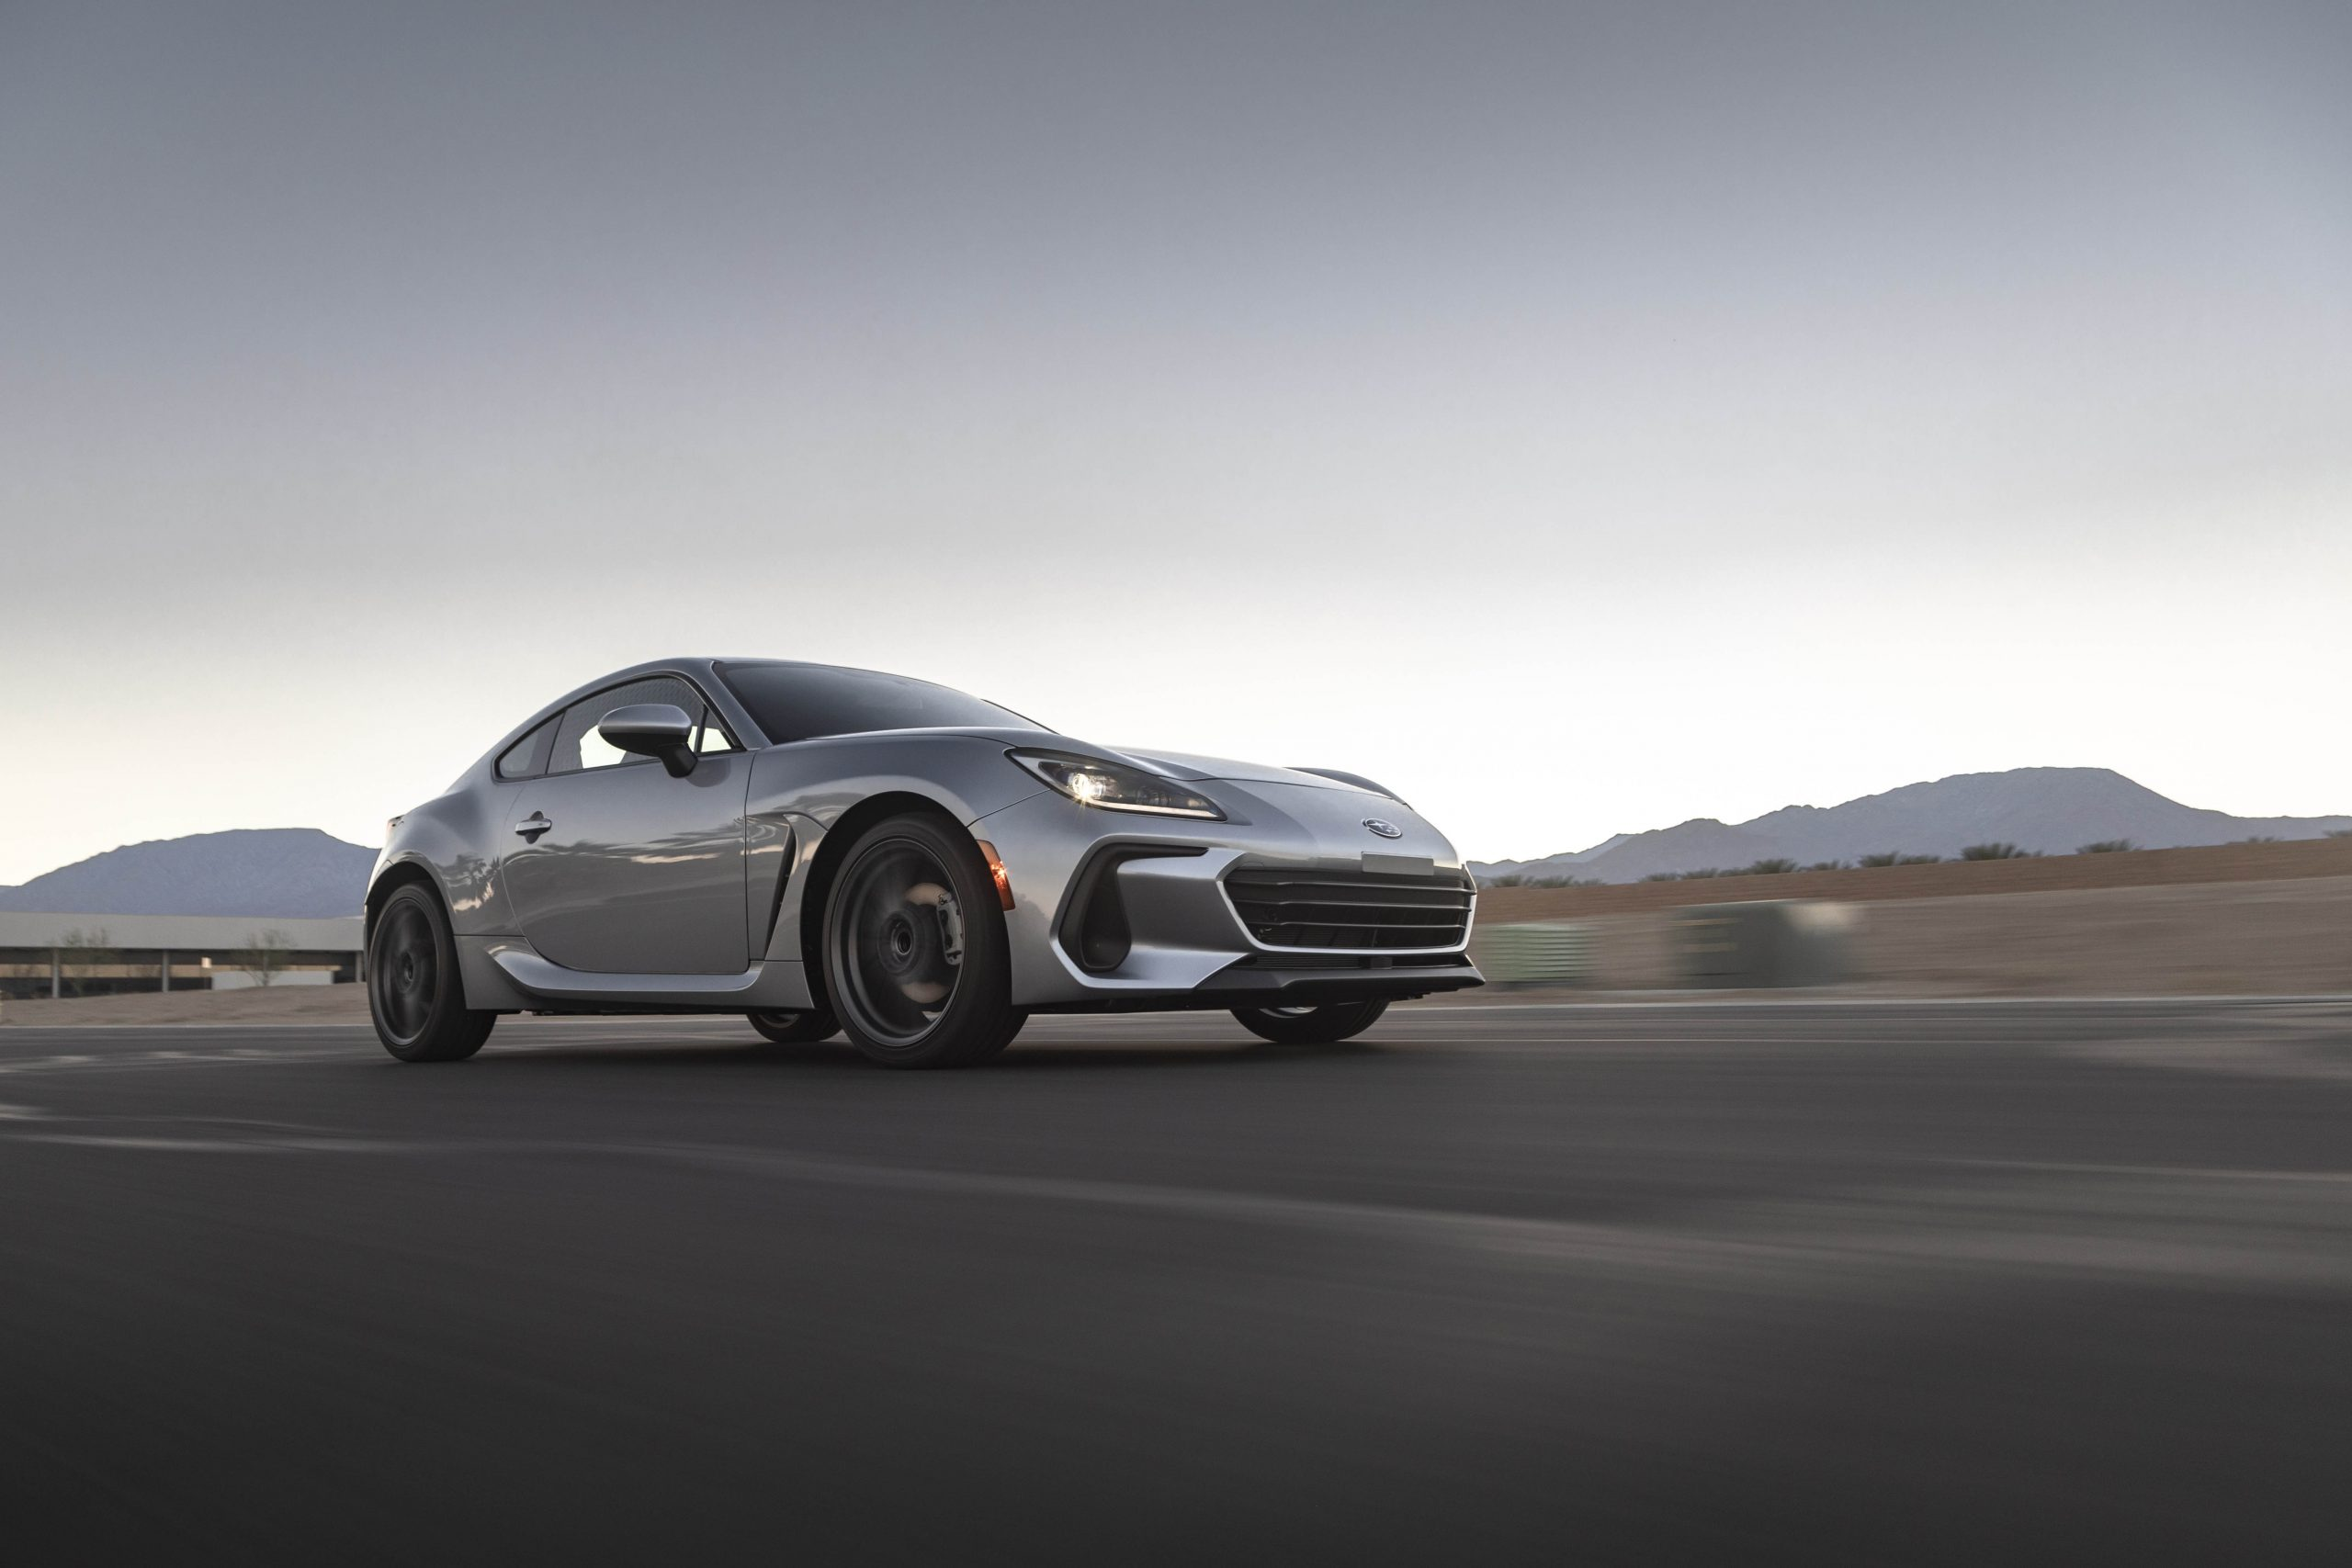 New 2022 Subaru BRZ front three-quarter track action